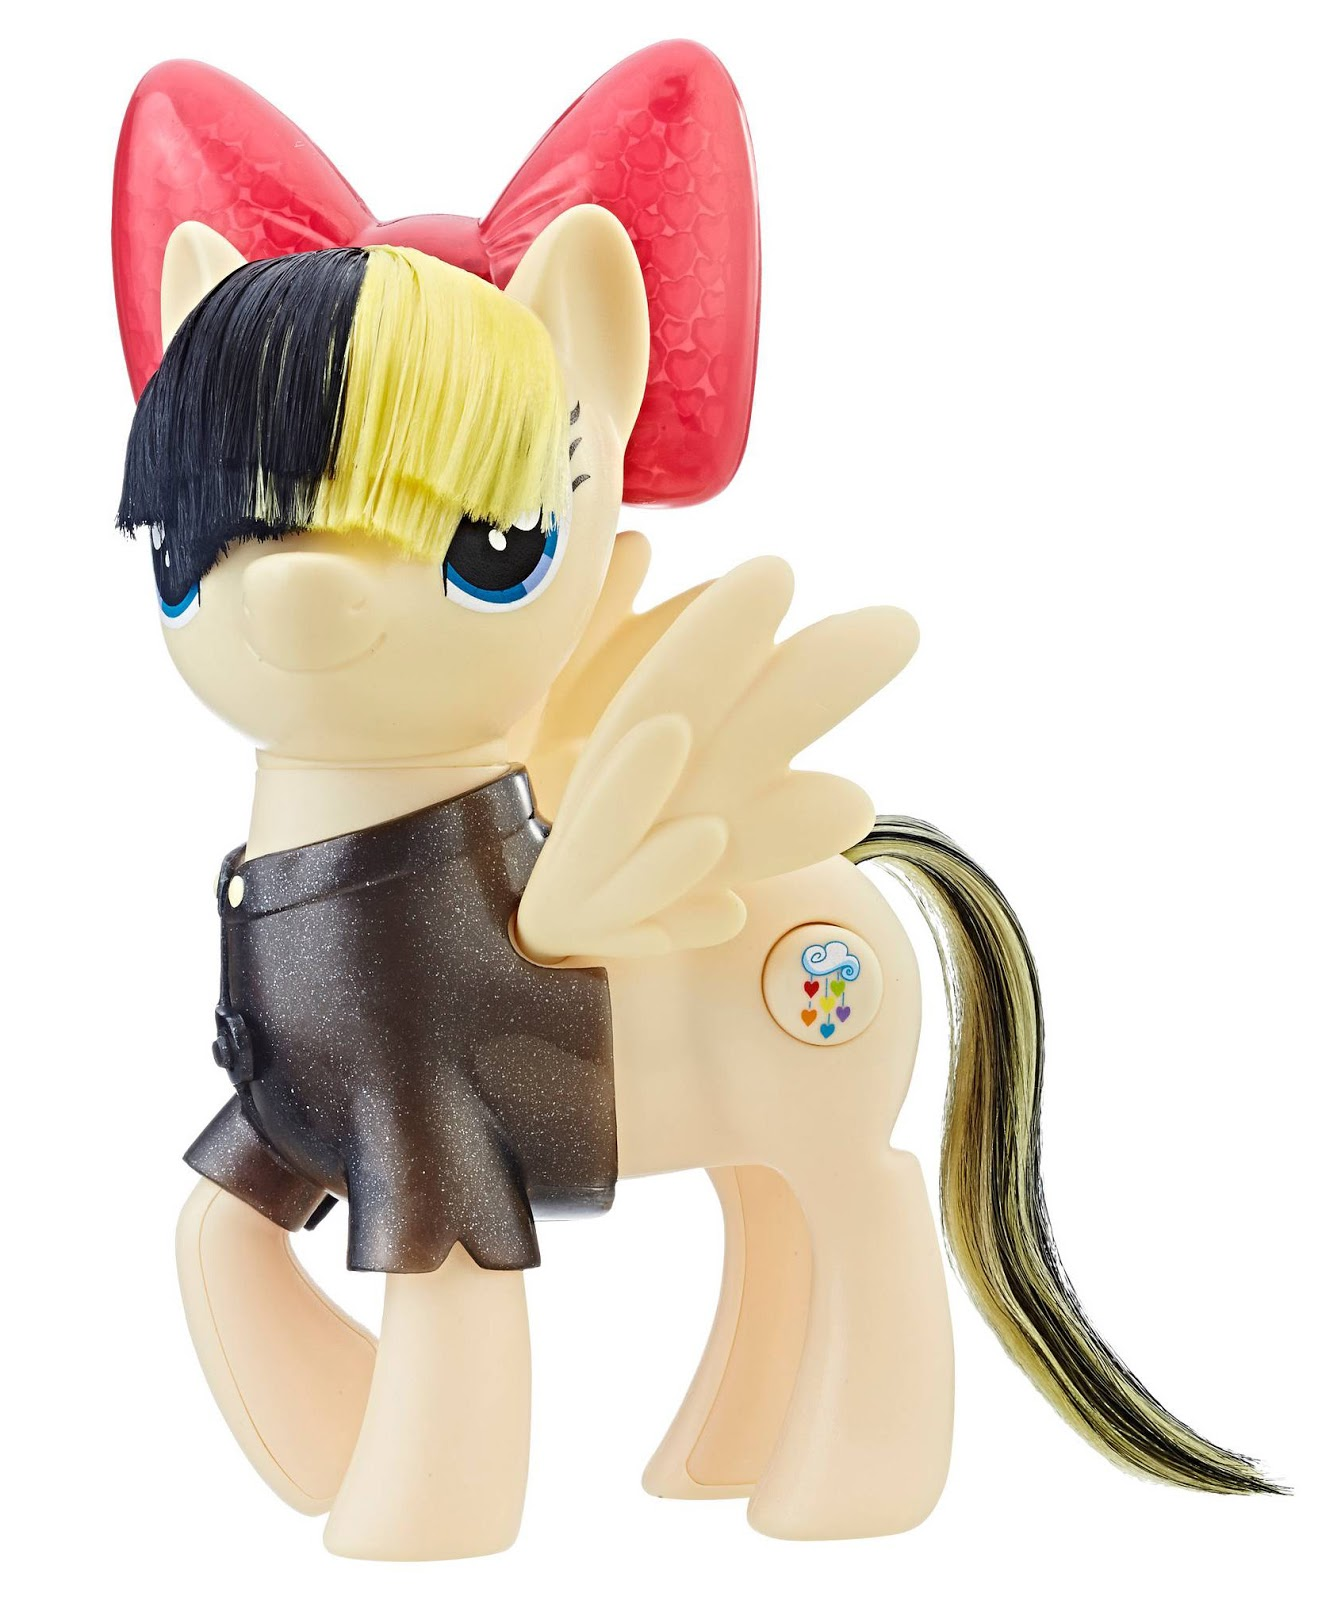 Target Exclusive Mlp The Movie Items Now On Target Website